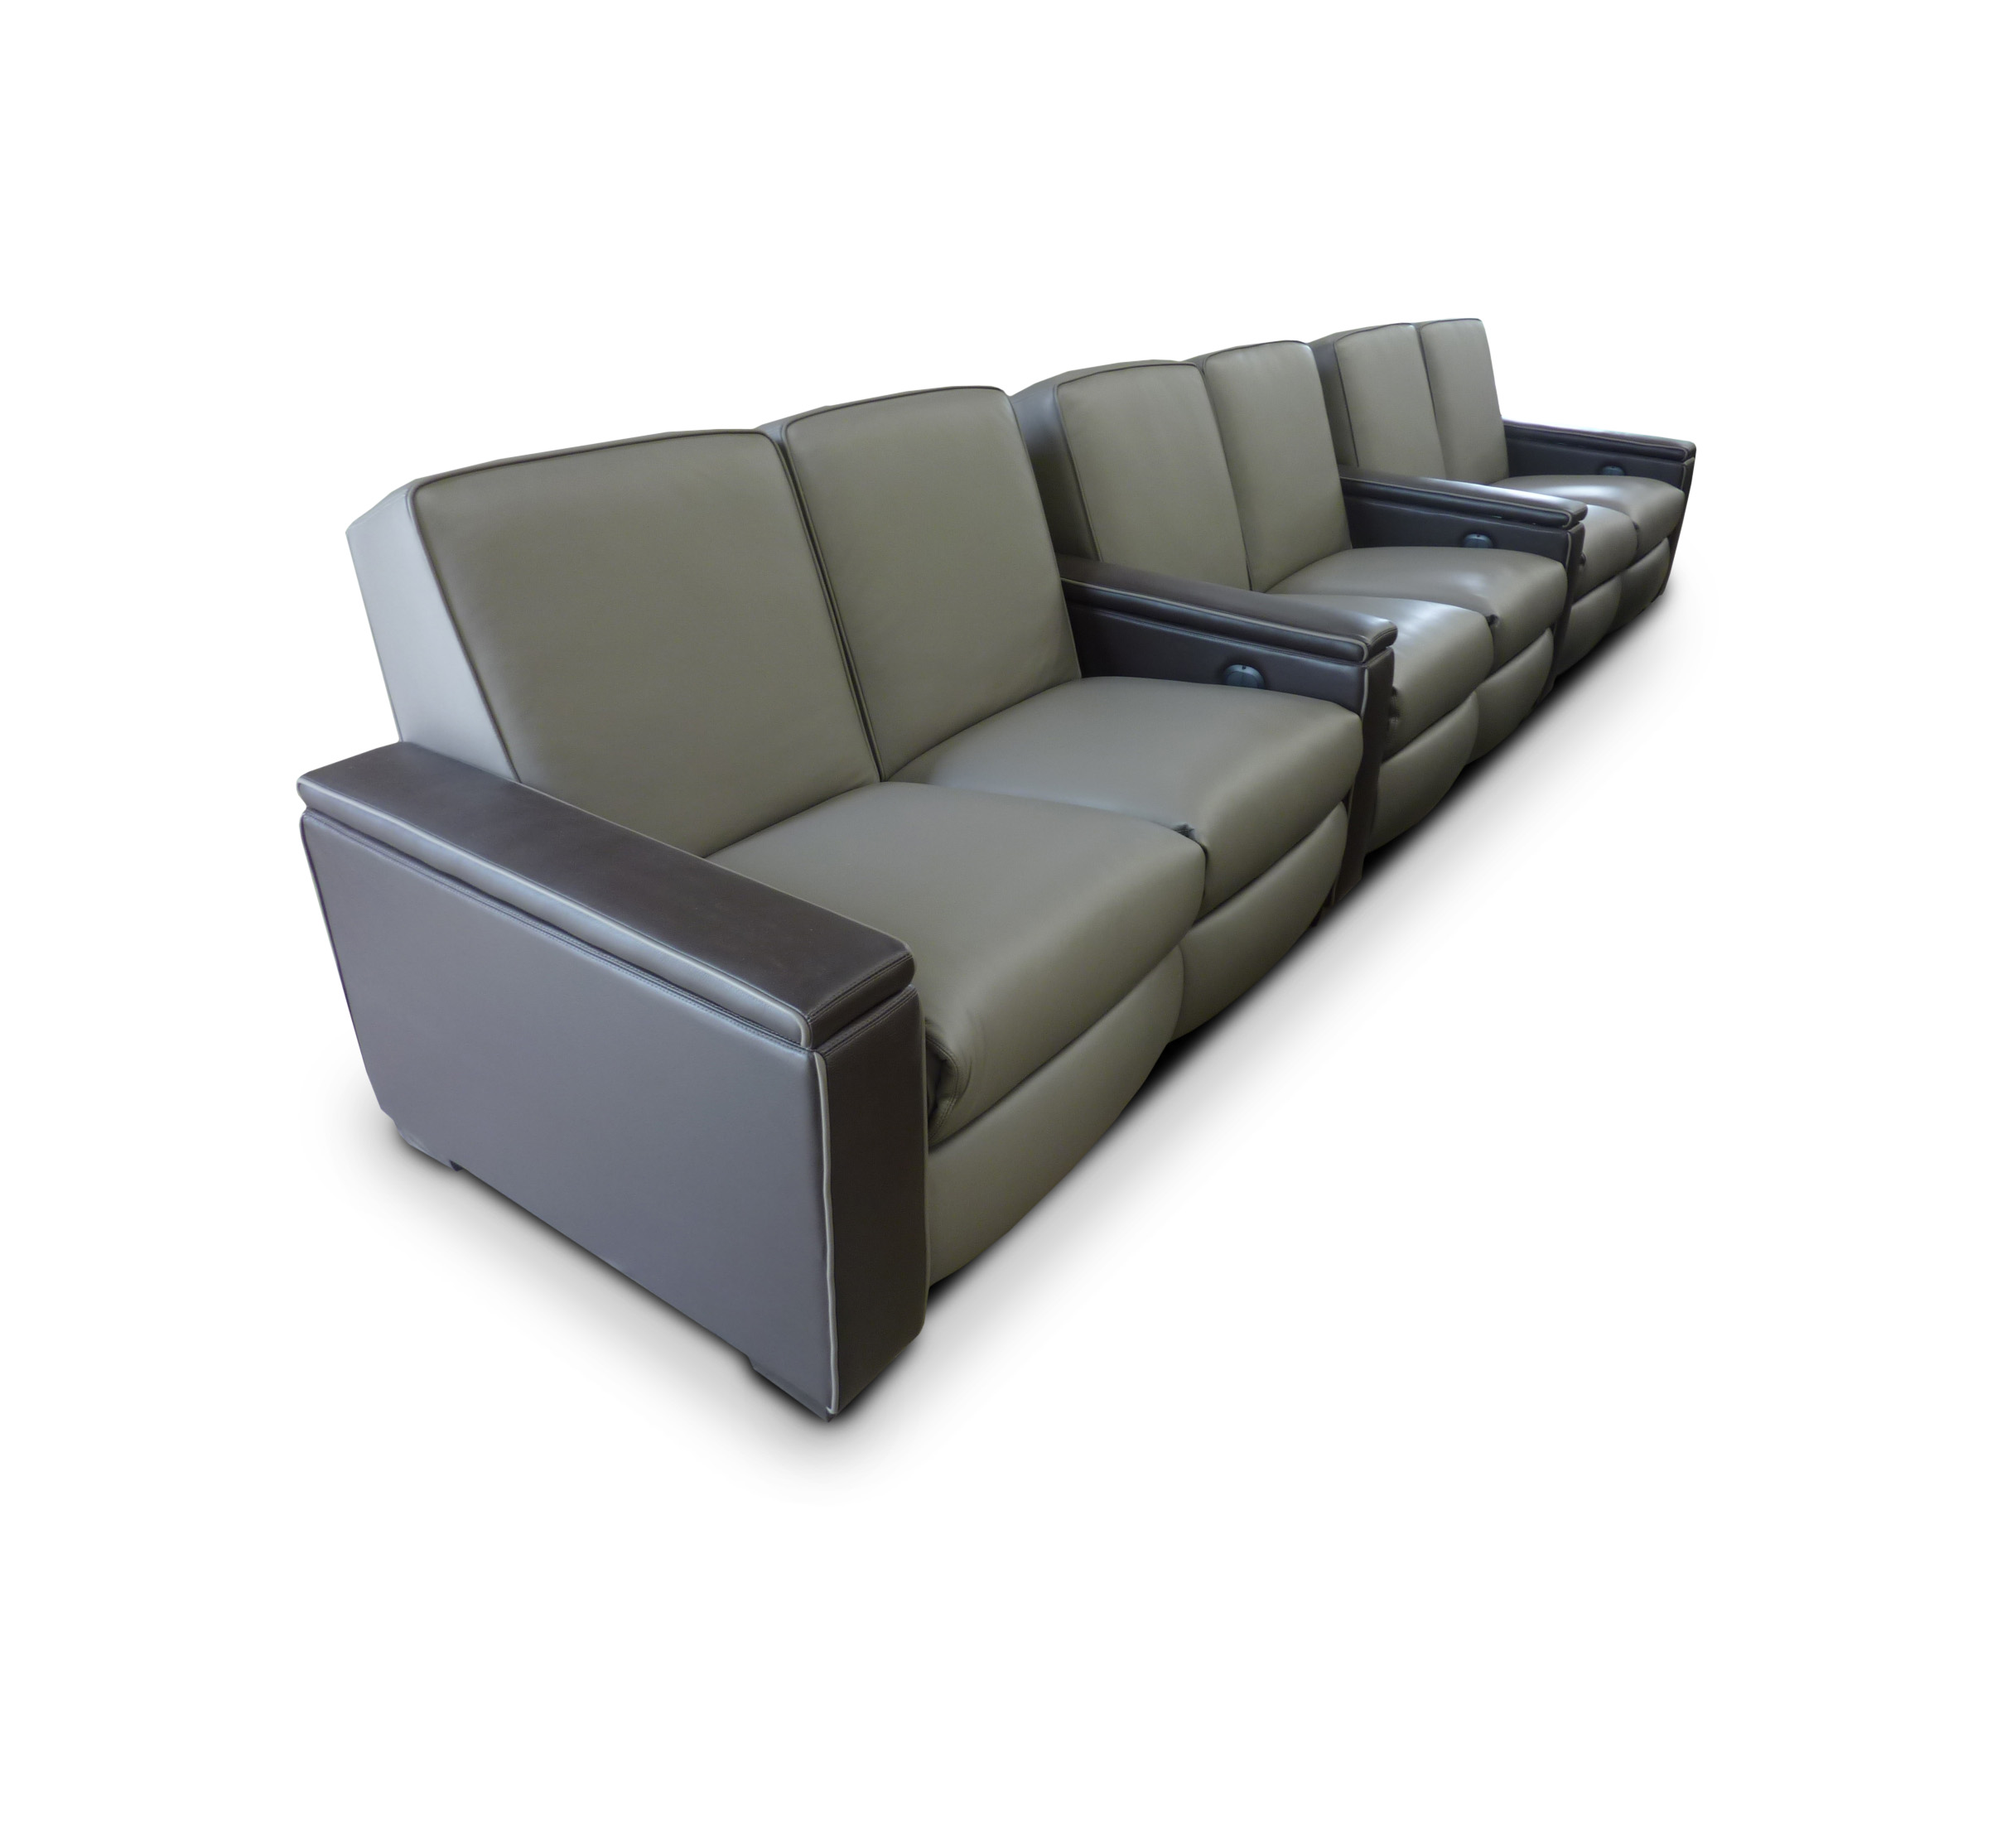 Dual Common Arm ~ Fully Upholstered